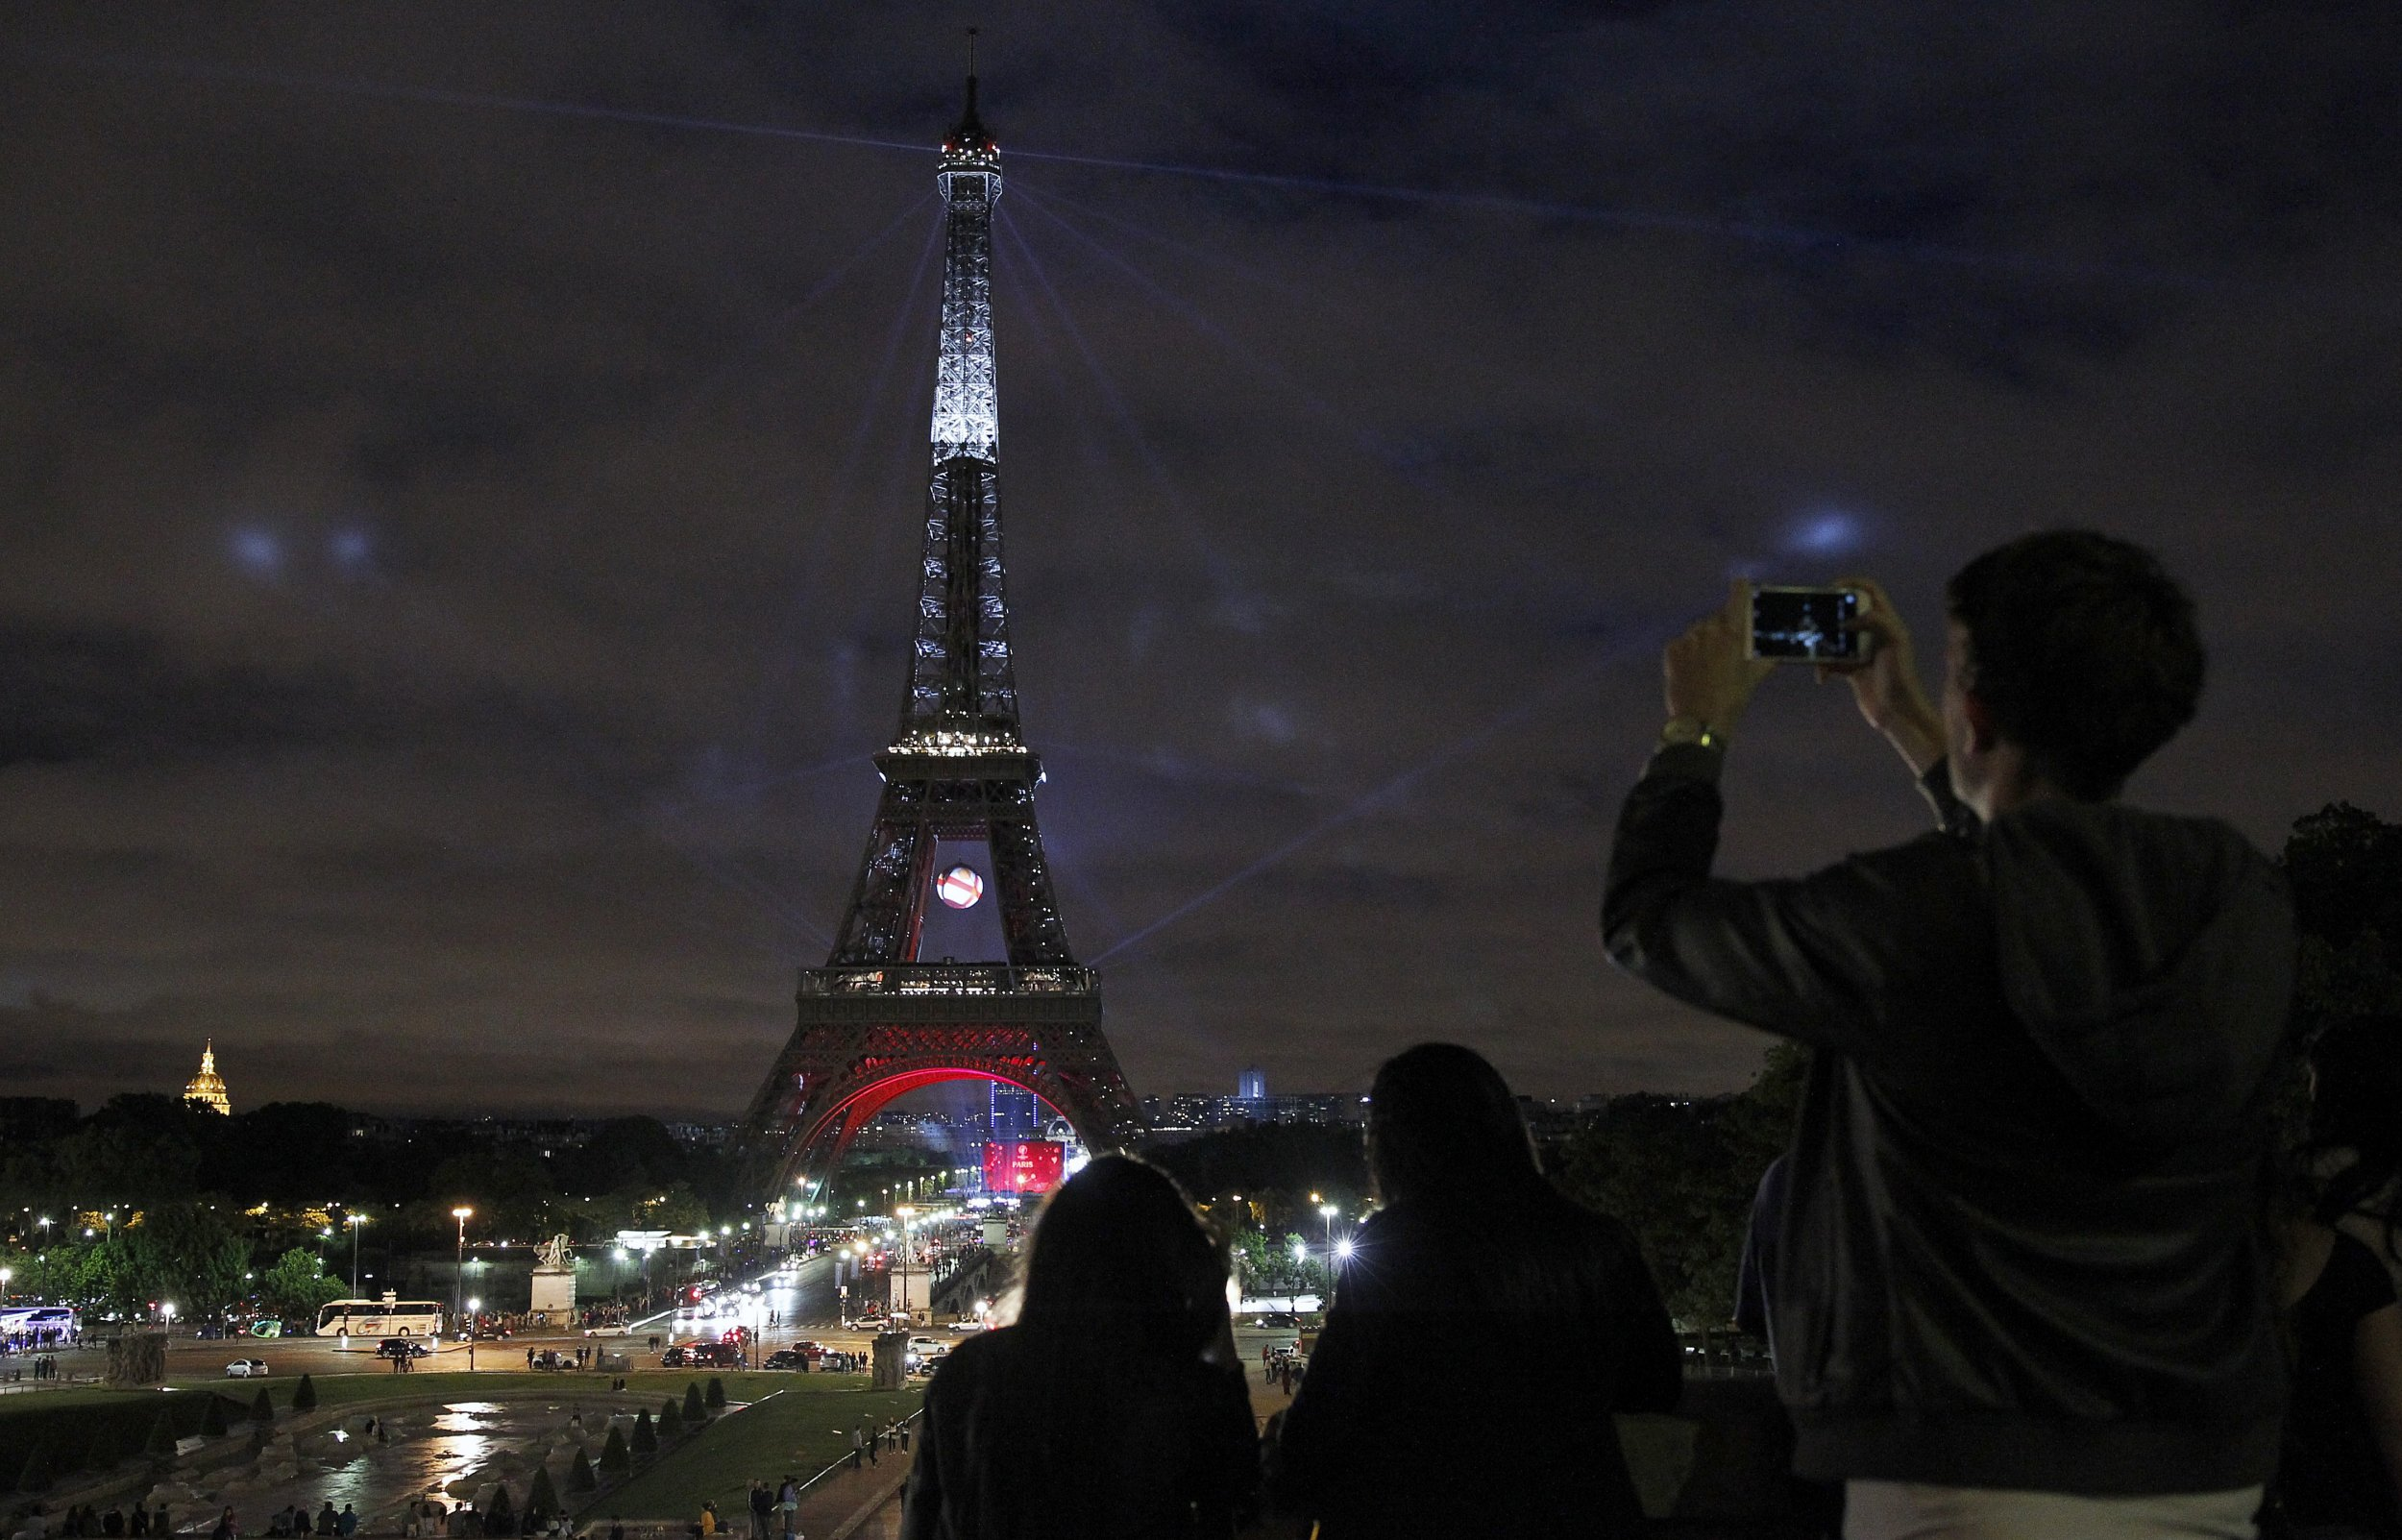 Banned! Taking pictures of the Eiffel Tower at night